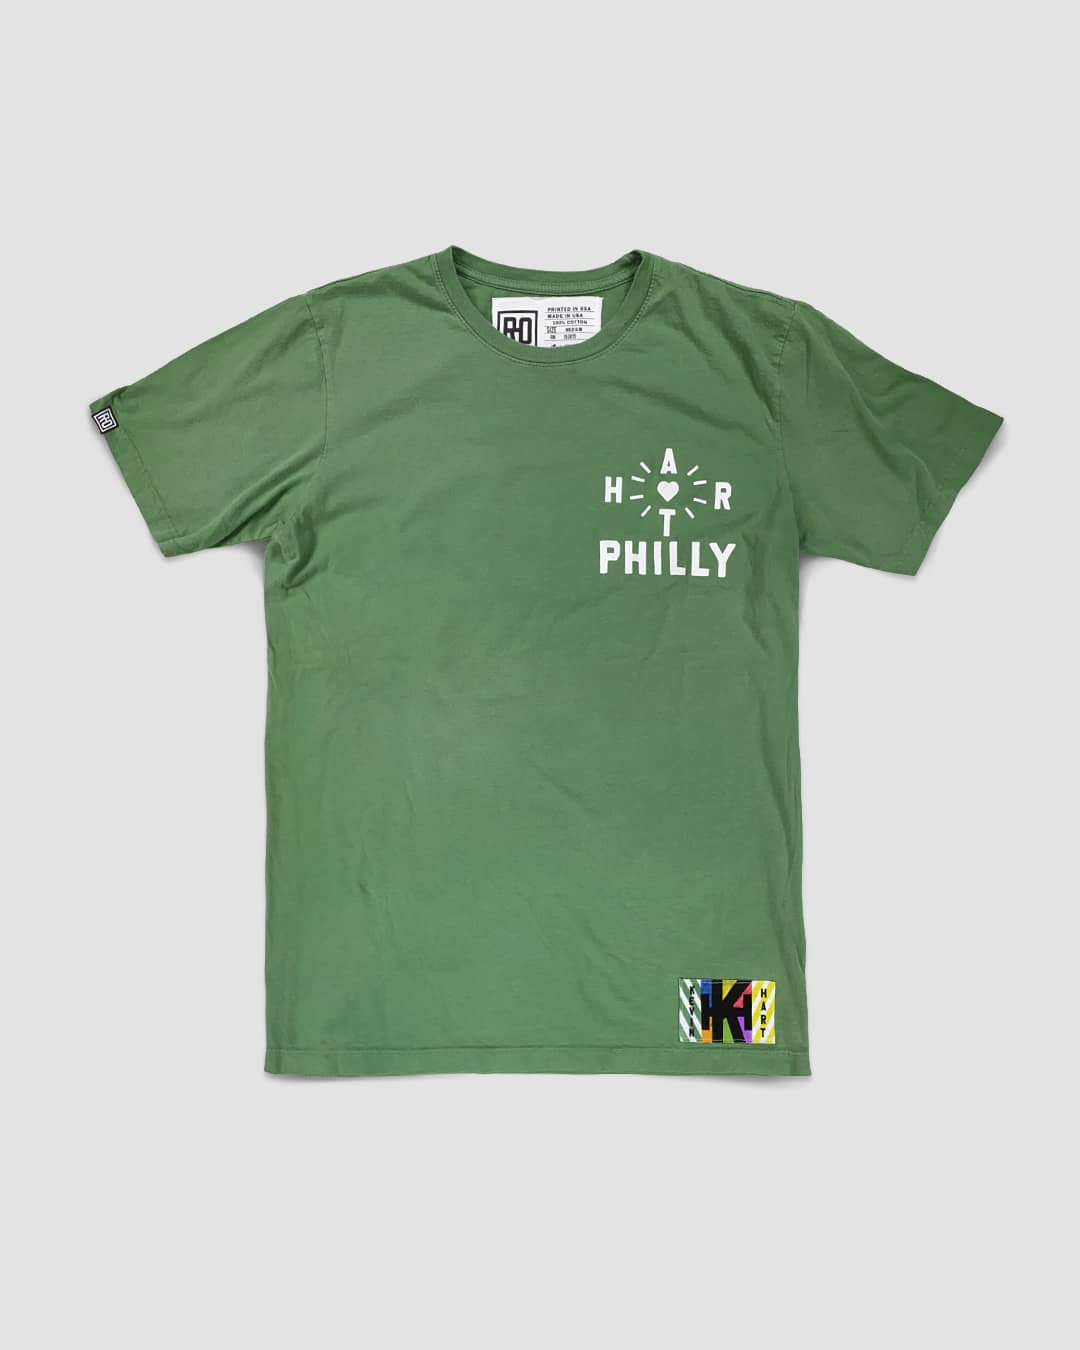 Kevin Hart Philly Tee - Roots of Inc dba Roots of Fight